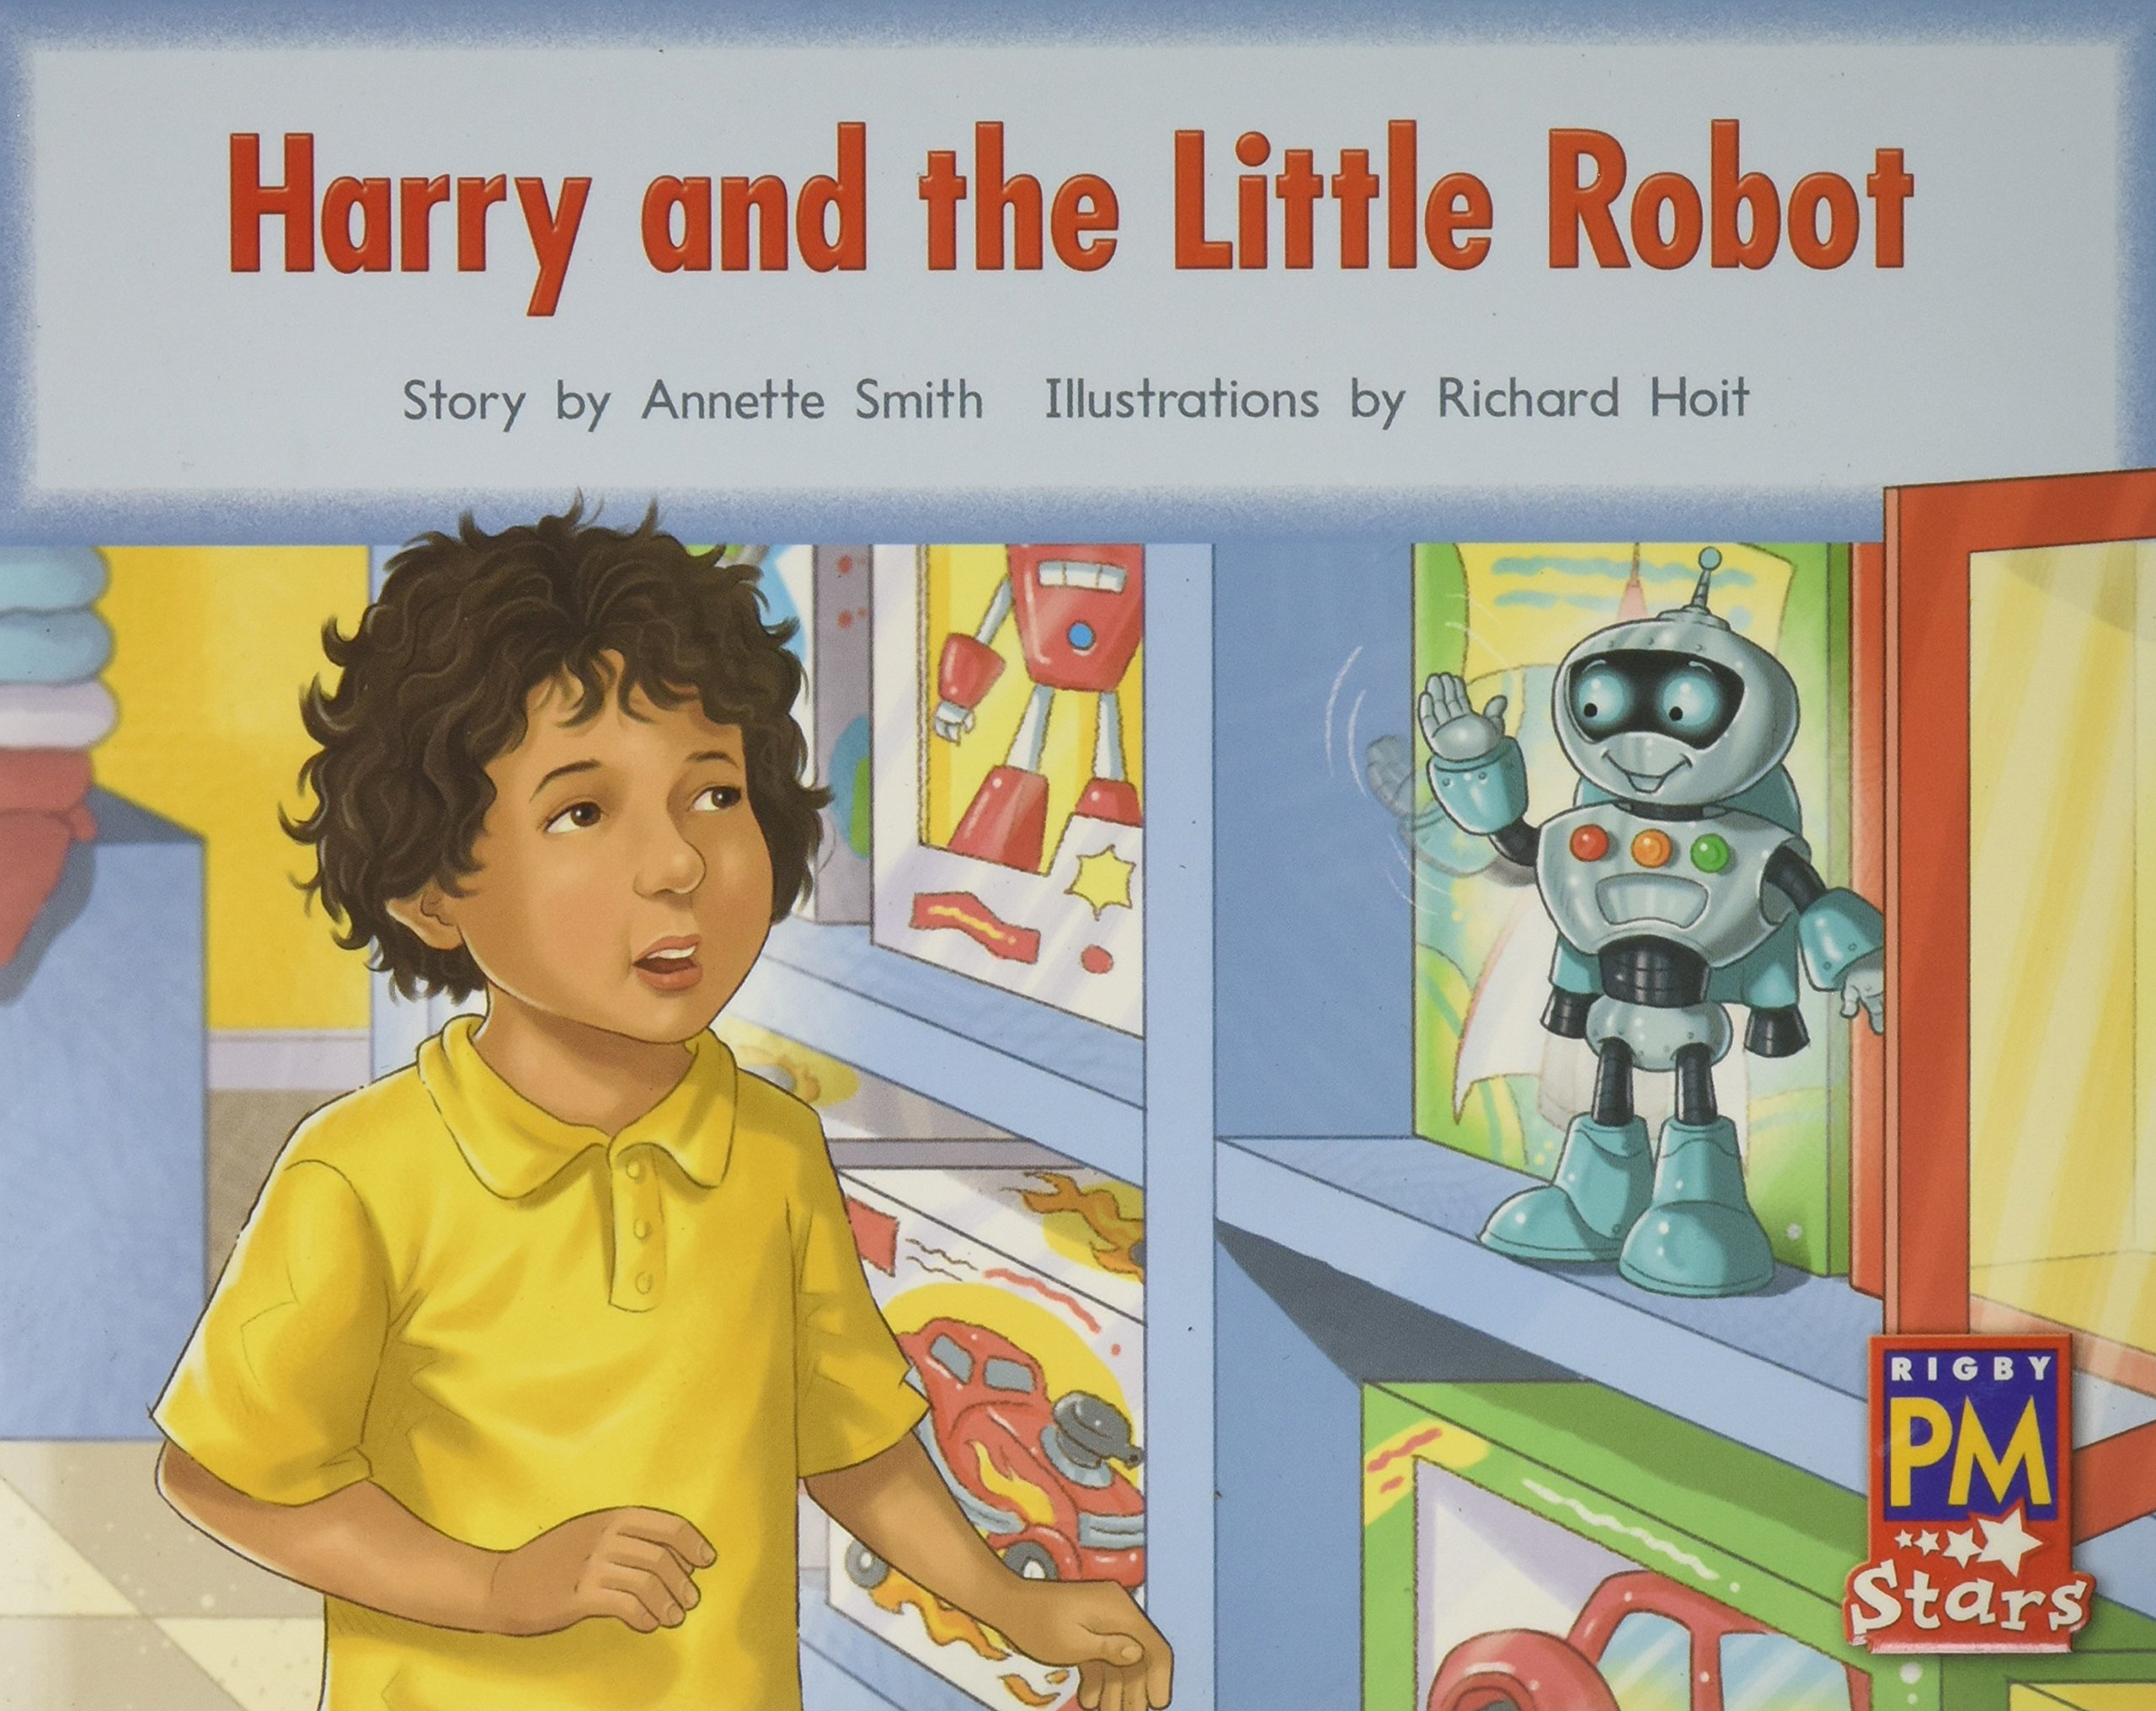 Read Online Rigby PM Stars: Individual Student Edition Red (Levels 3-5) Harry and the Little Robot PDF